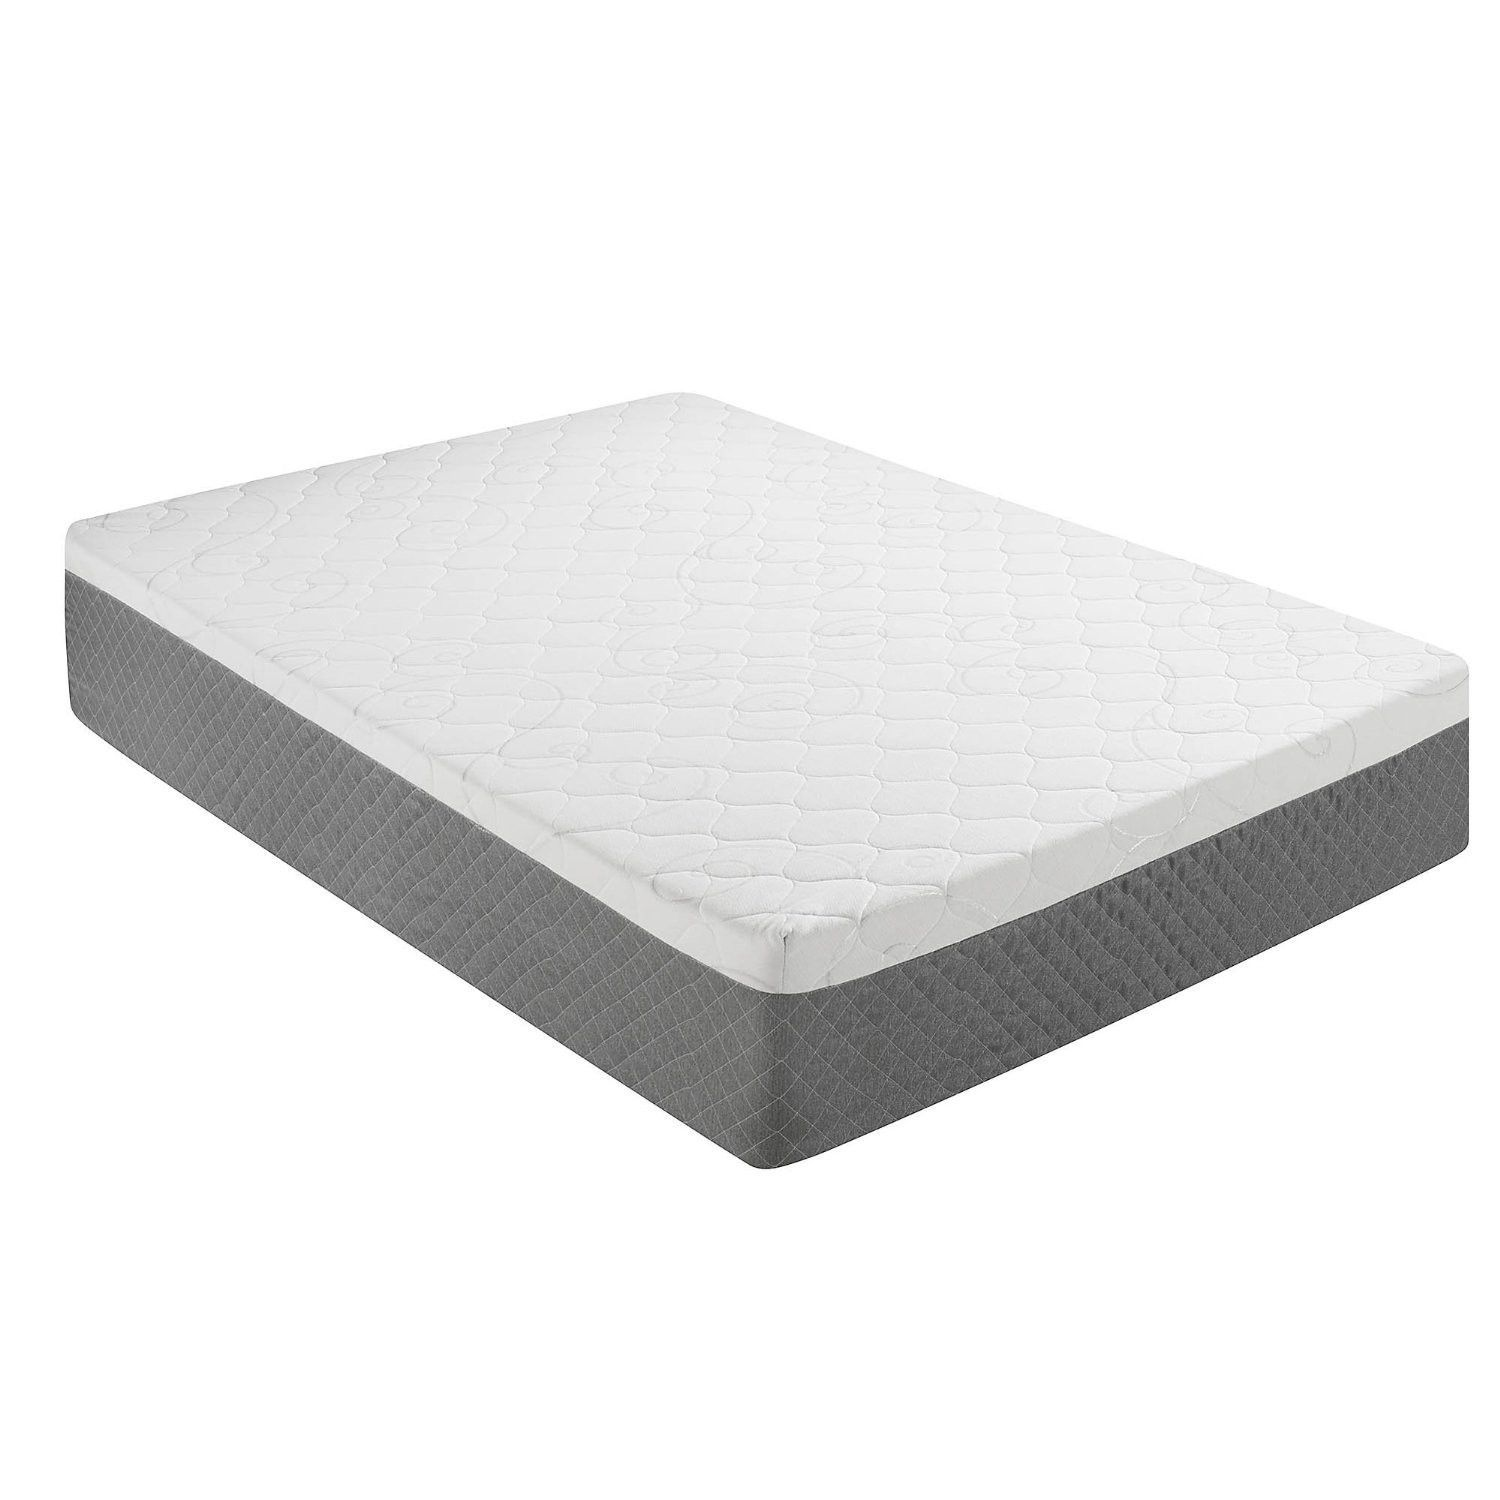 memory foam mattress box. King Size 14-inch Thick Memory Foam Mattress Box